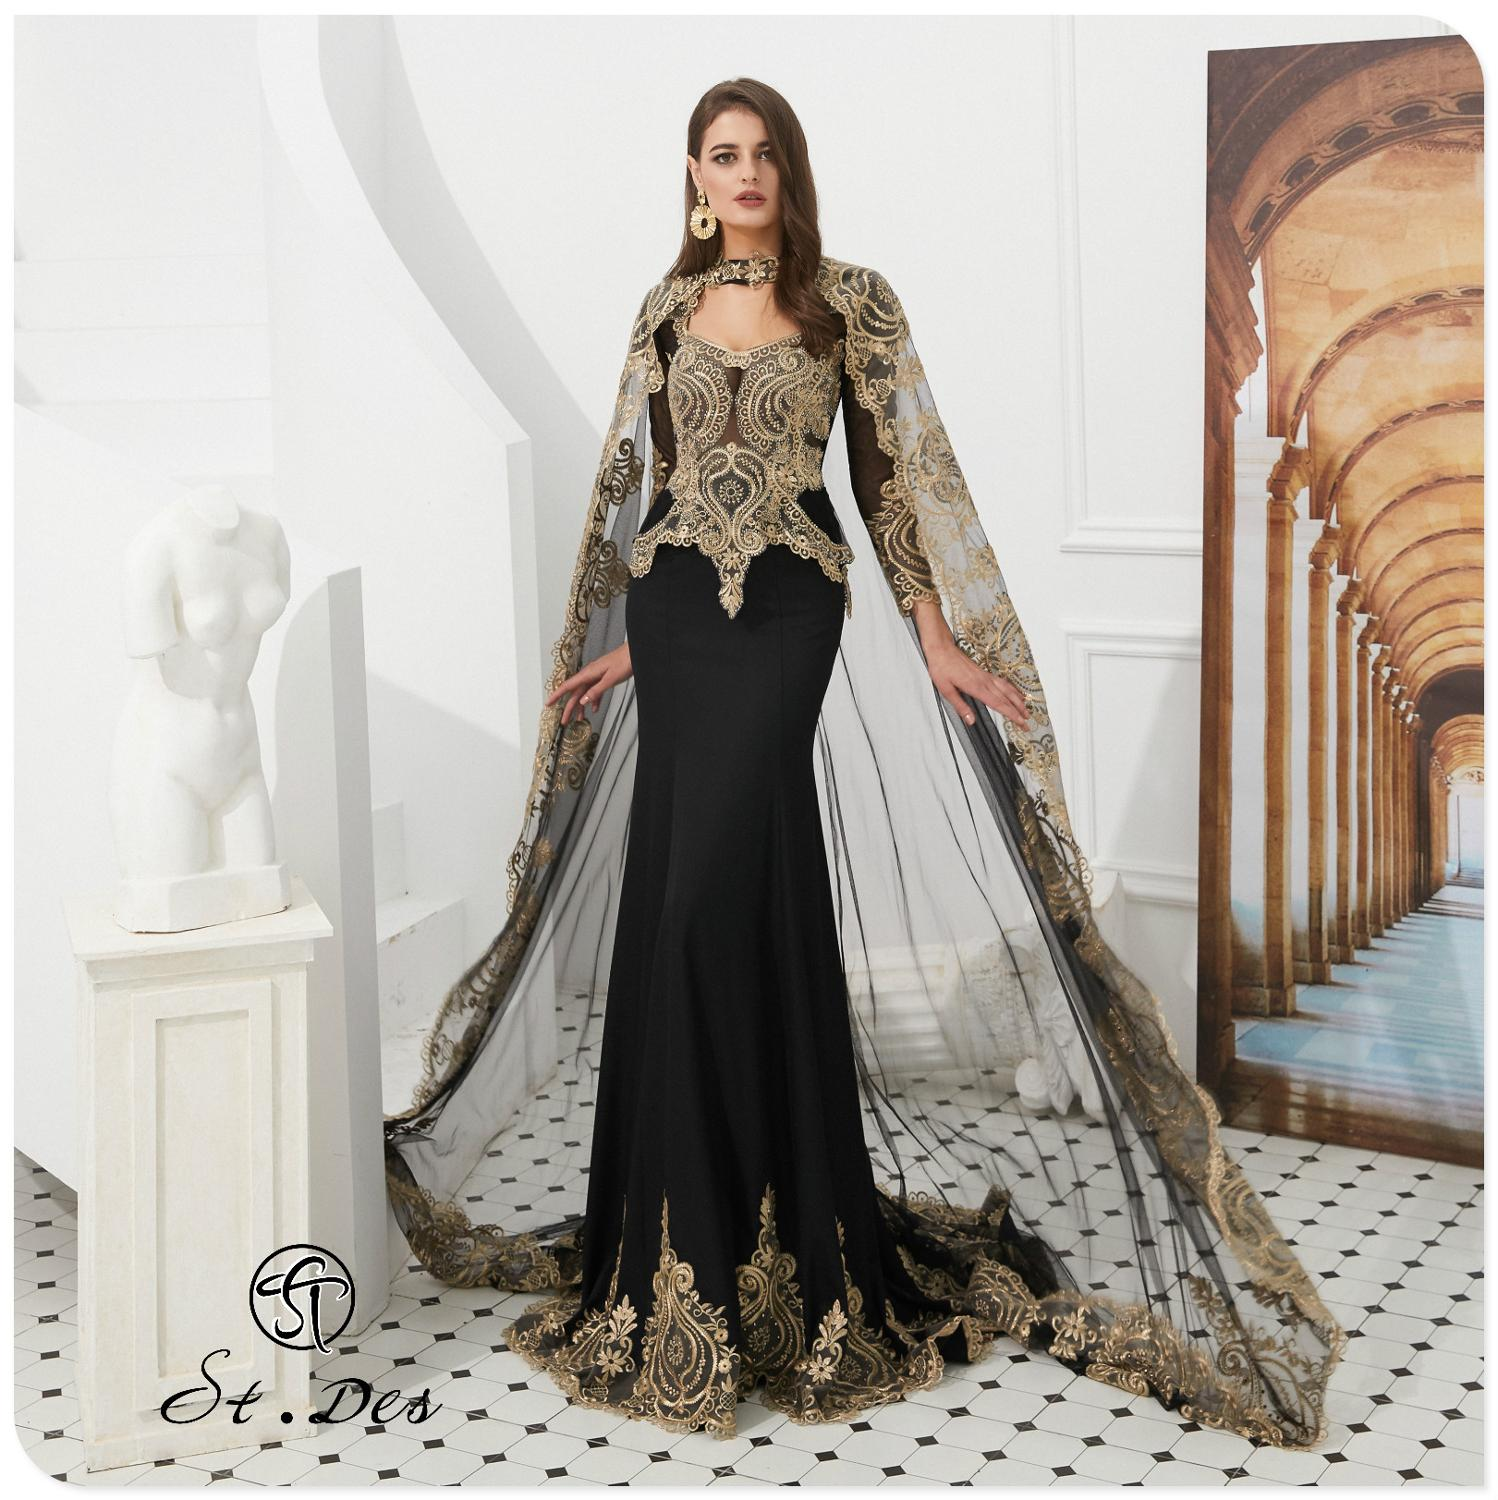 2020 S.T.DES Mermaid Cape Cloak Round-Neck Black Blue Wine Embroidery Long Sleeve Evening Dresses Long Party Gown Formal Dress